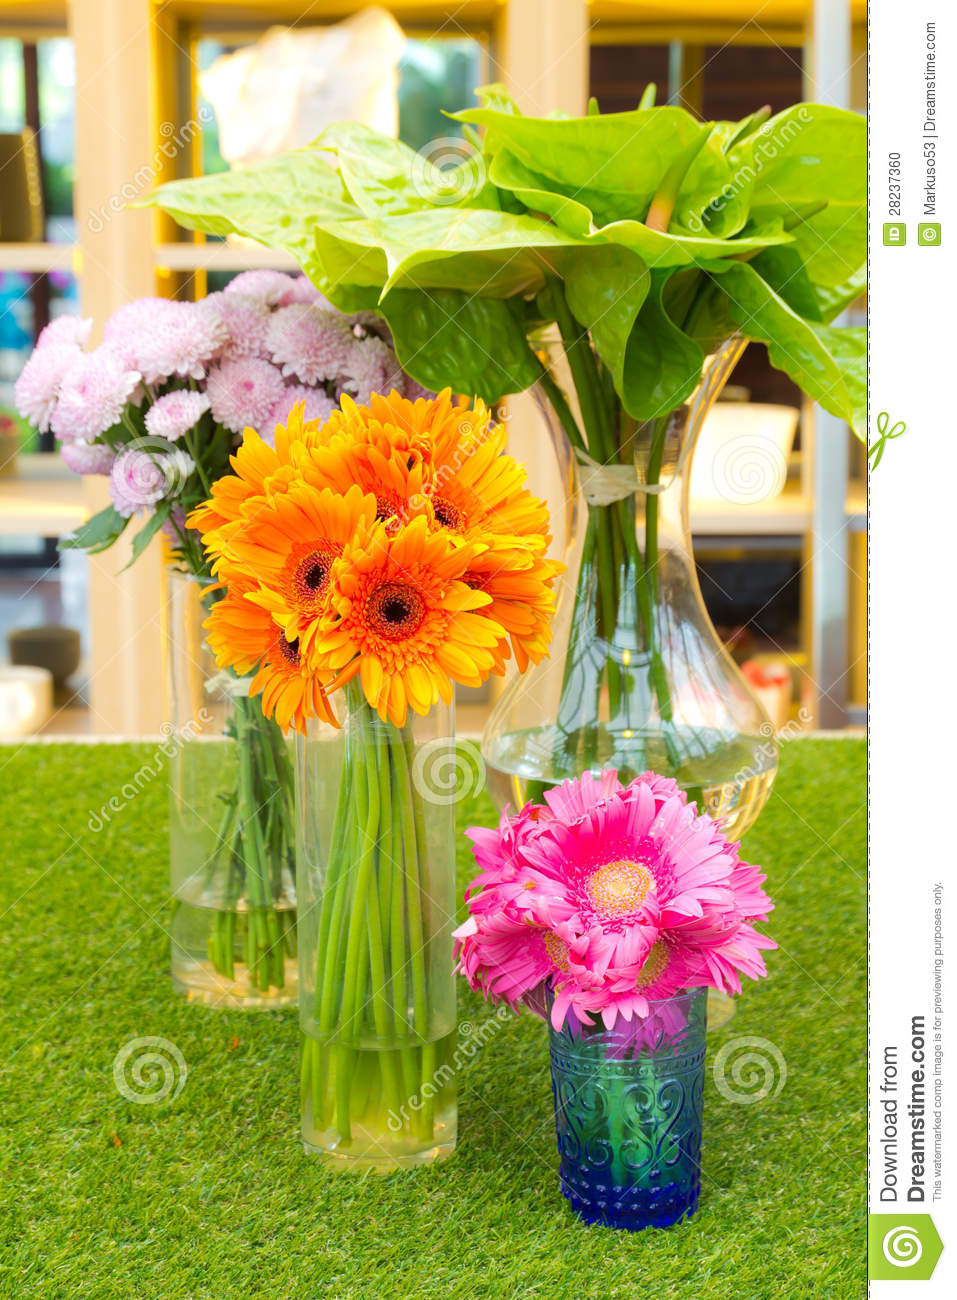 Colorful Daisy Flower In Vase Stock Photo - Image of ...